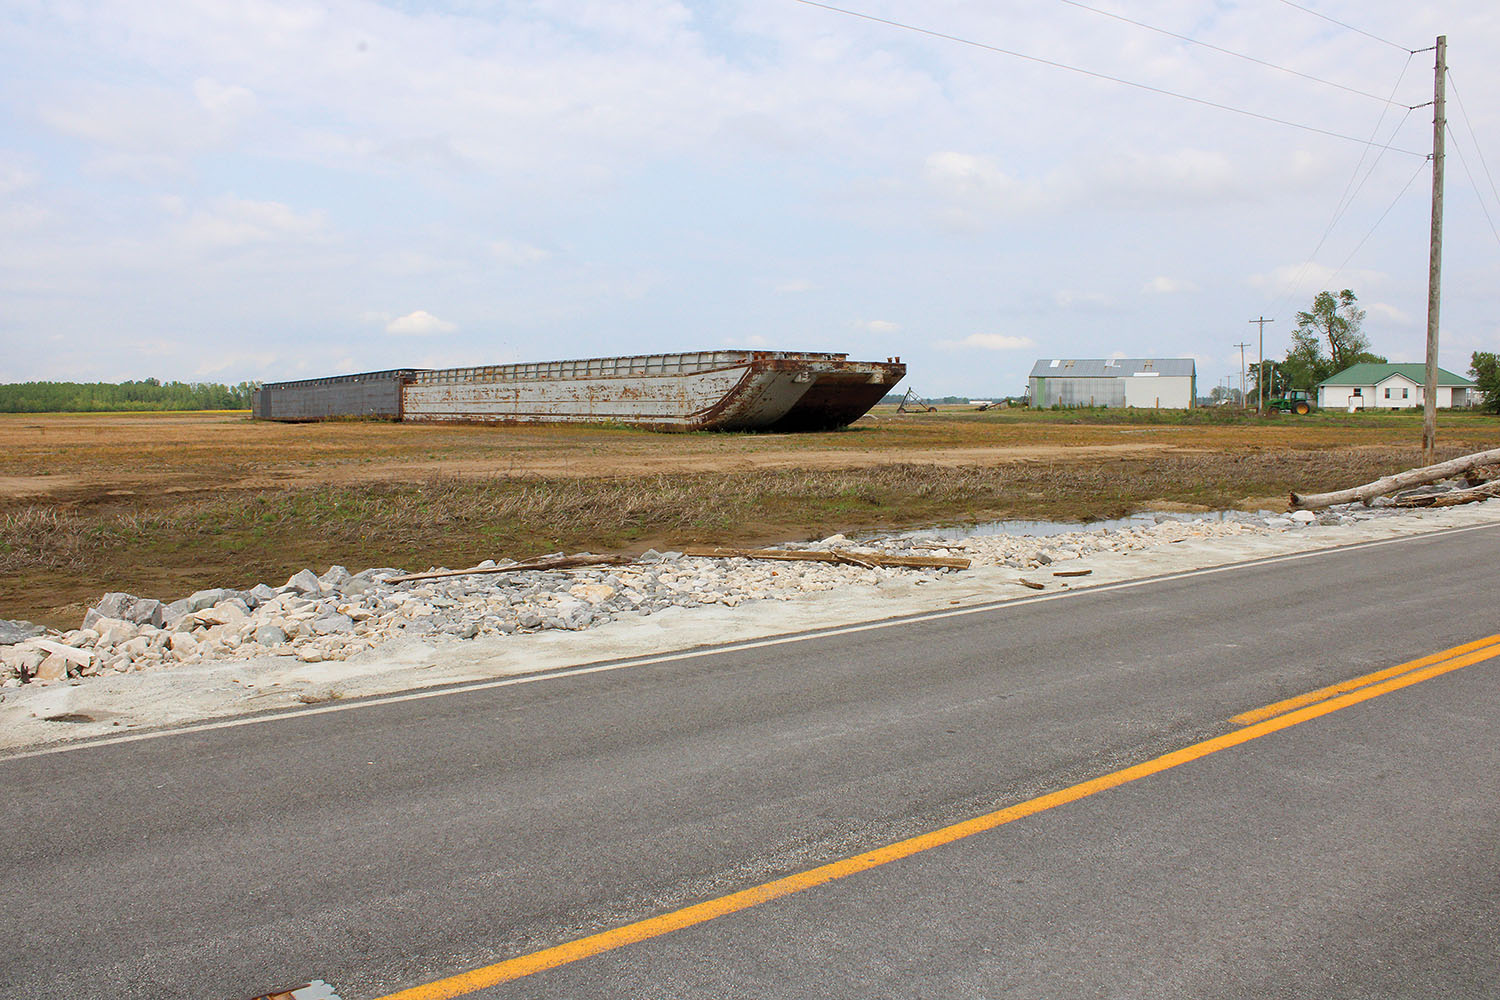 These two barges remain stranded in a southern Illinois farmer's field nearly two years after they were sucked through a hole in the Len Small Levee during high-water event on the Mississippi River. (Photo by Shelley Byrne)